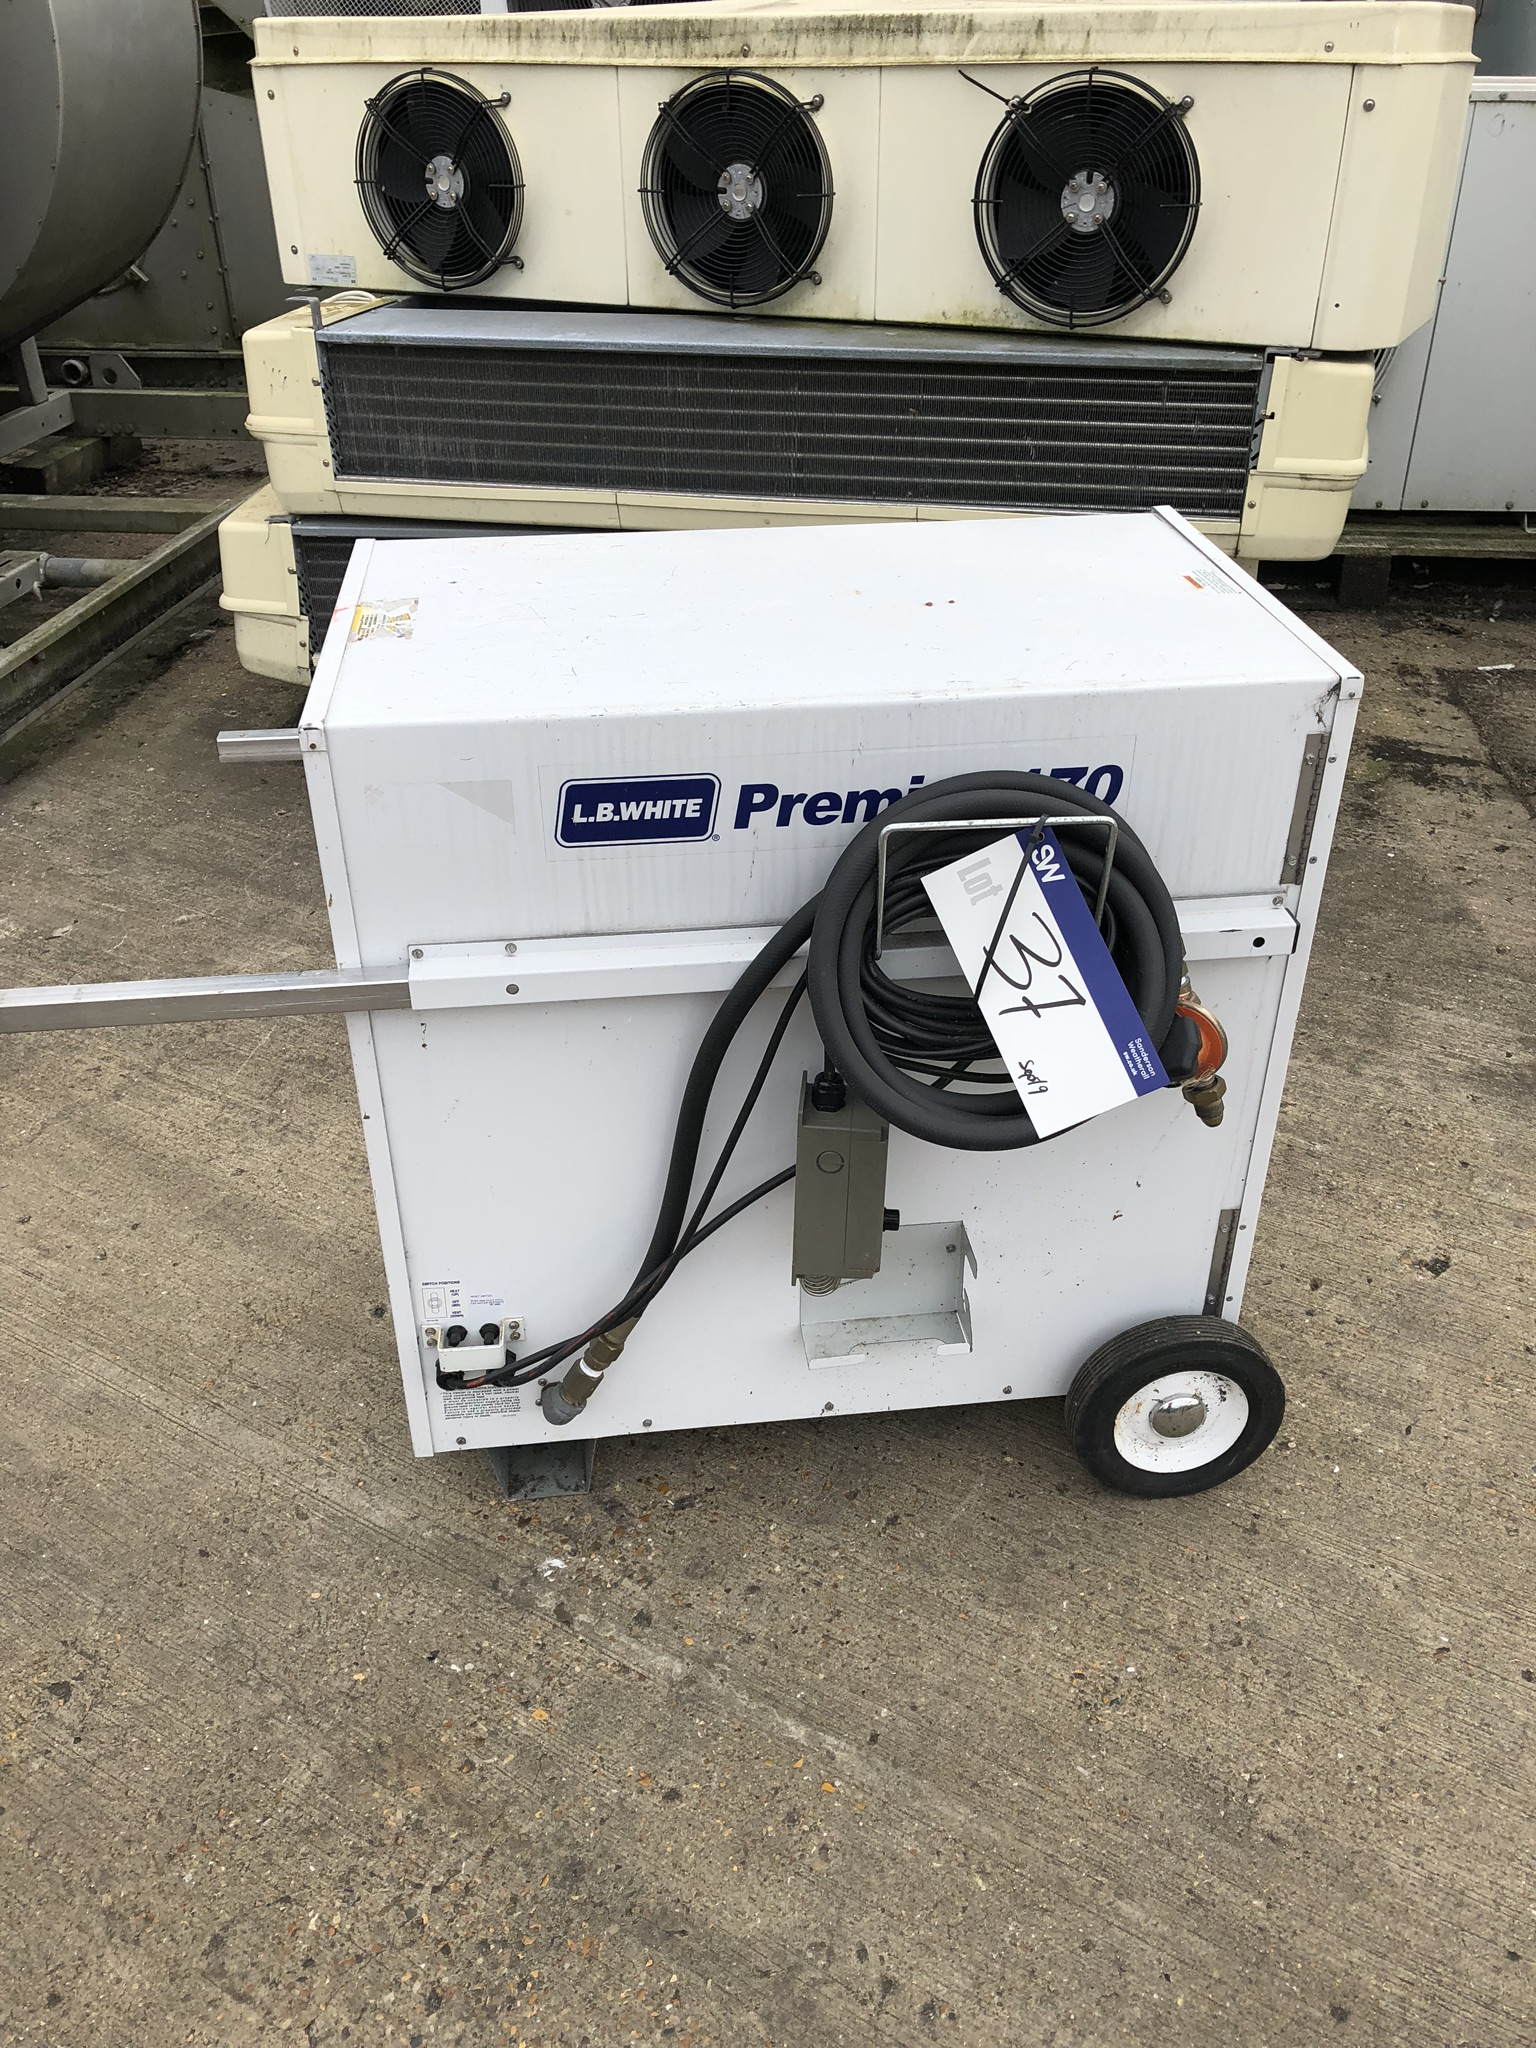 LB White Premier 170 TS Mobile Heater, lift out charge - £20 - Image 2 of 3